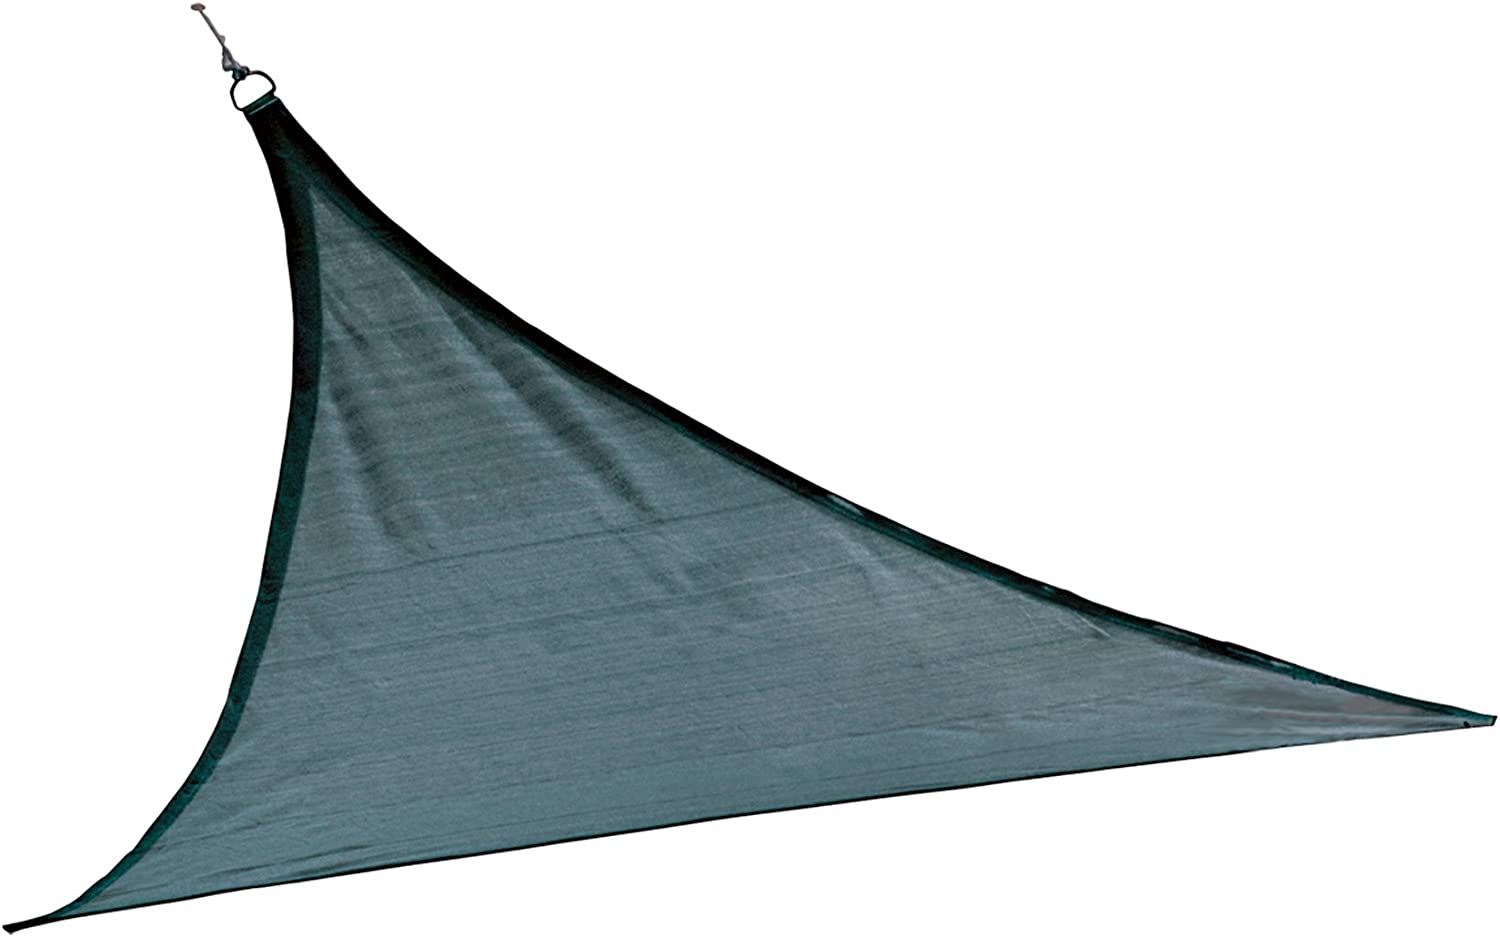 ShelterLogic Triangle Shade Sail, Sea bluee, 16 x 16 x 16 ft.